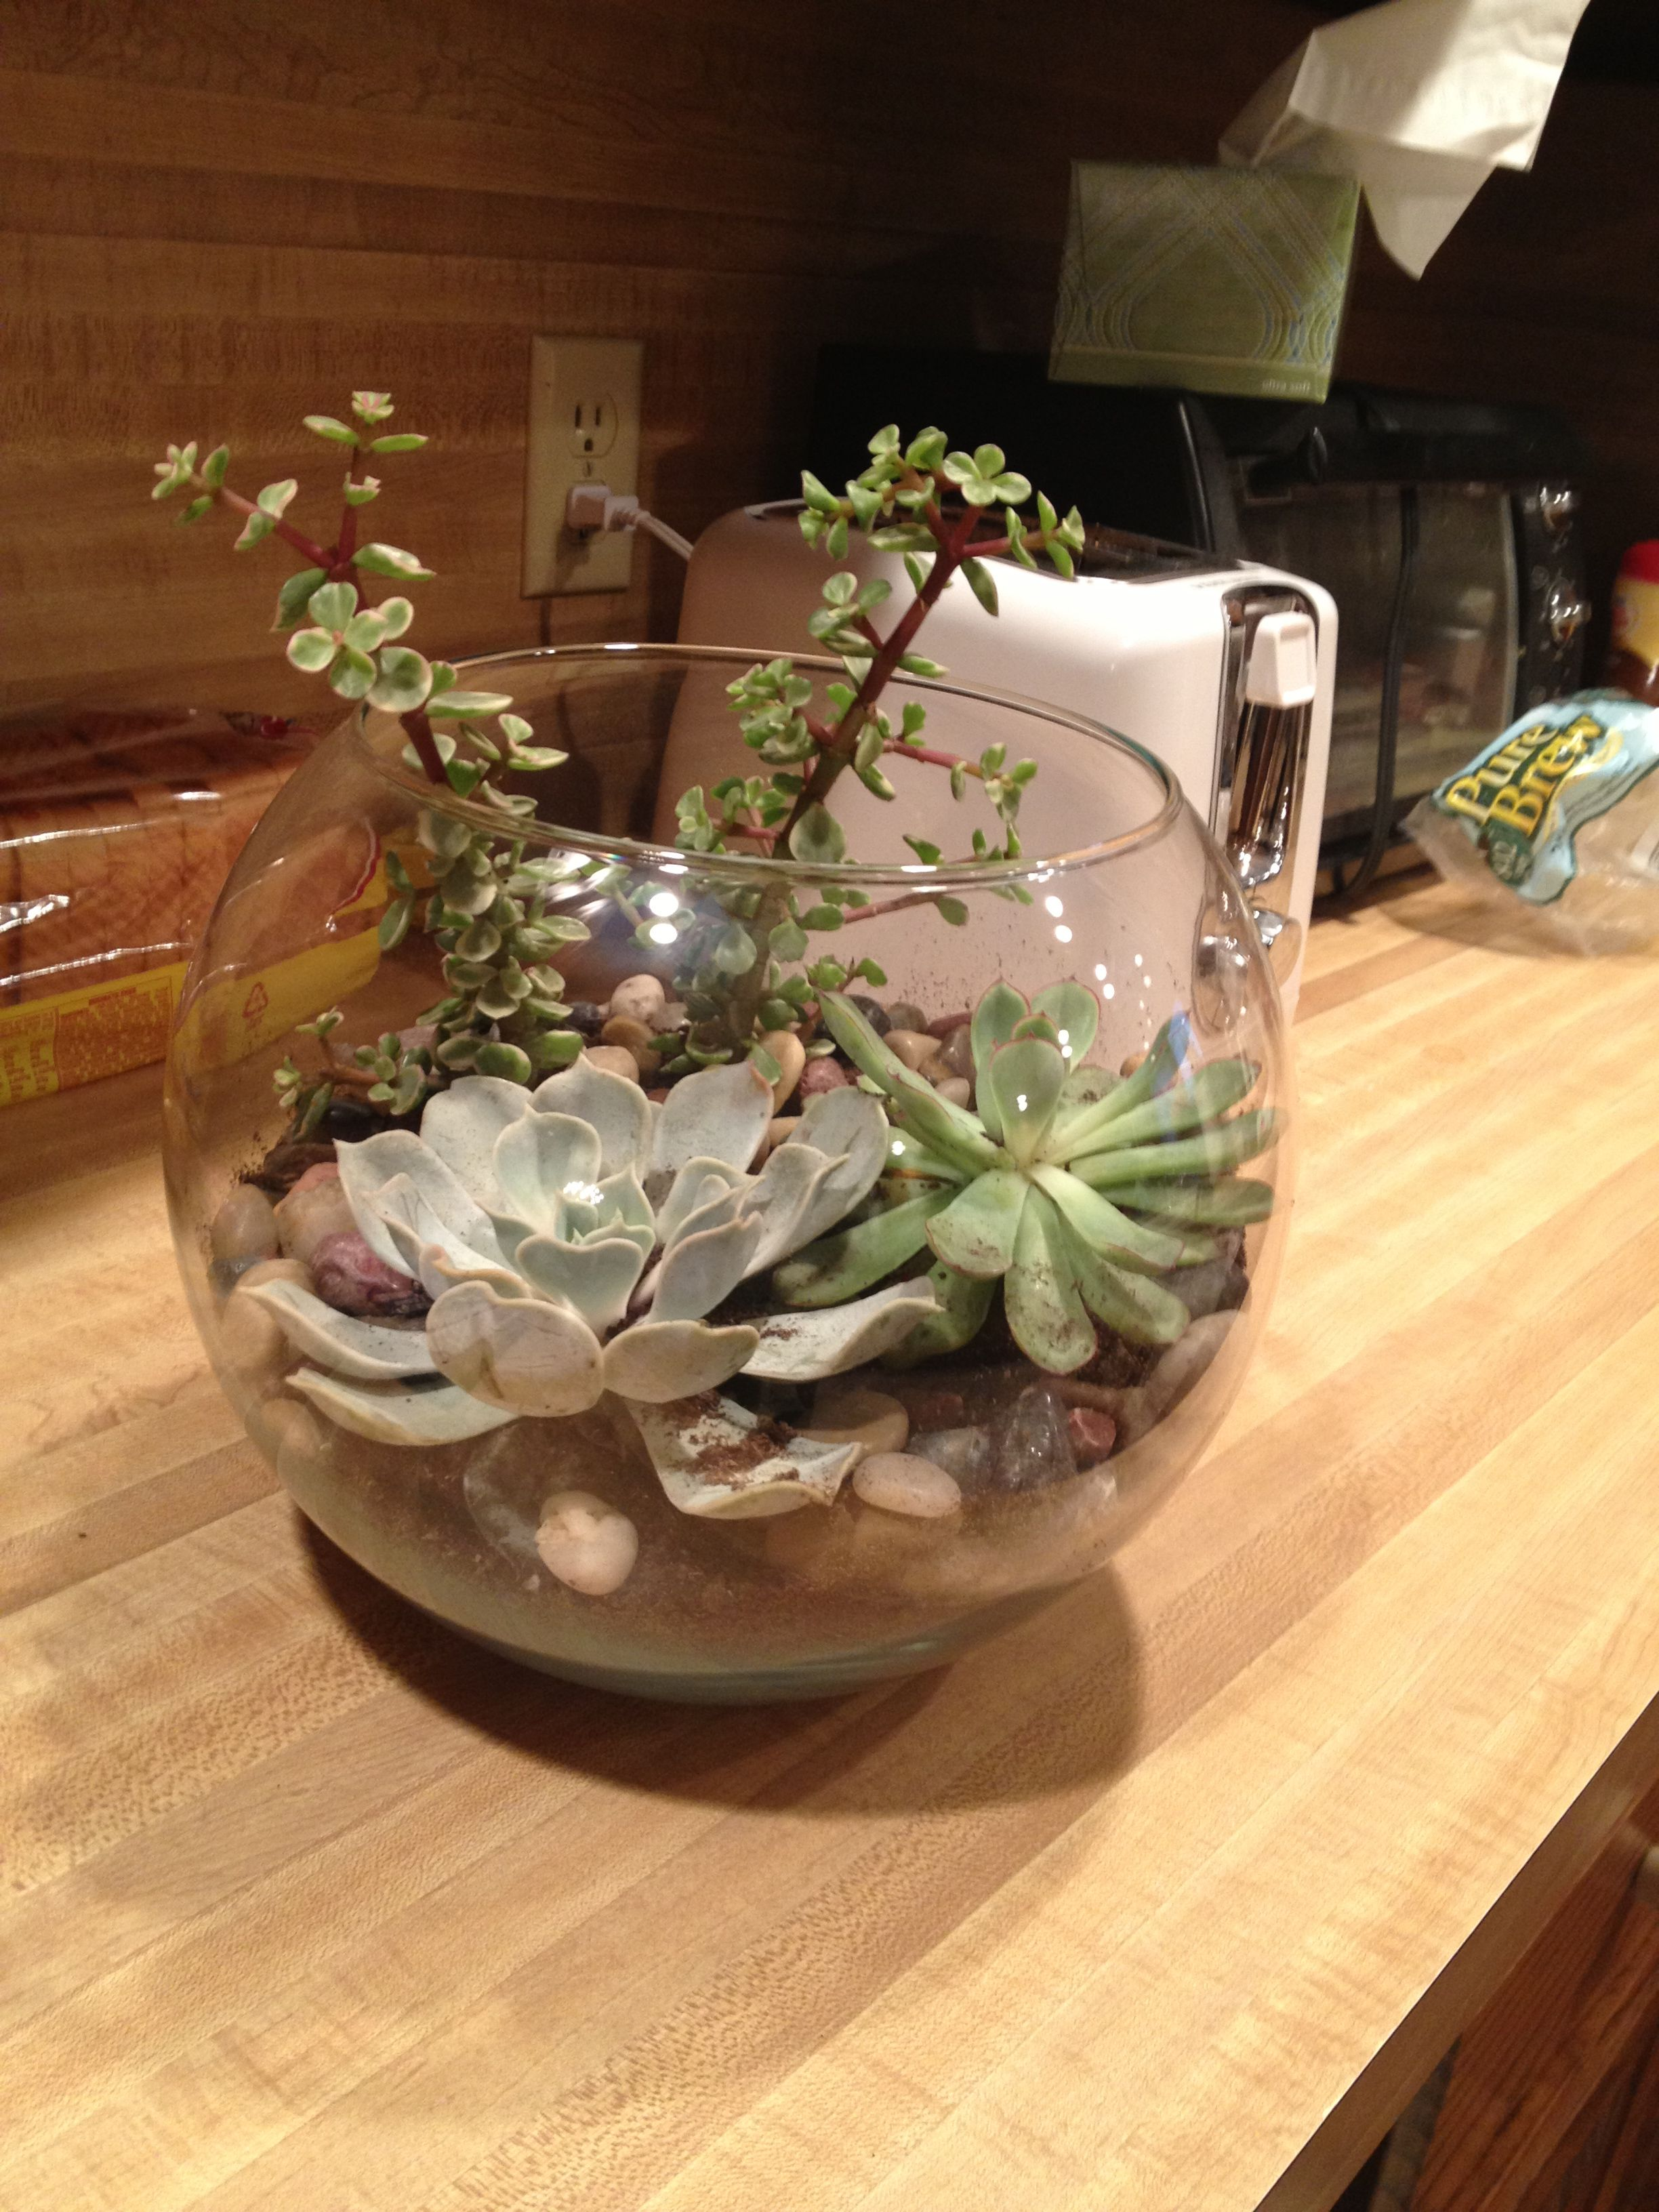 I Made A Terrarium The Plants Were About 3 50 At Lowes Got A Bag